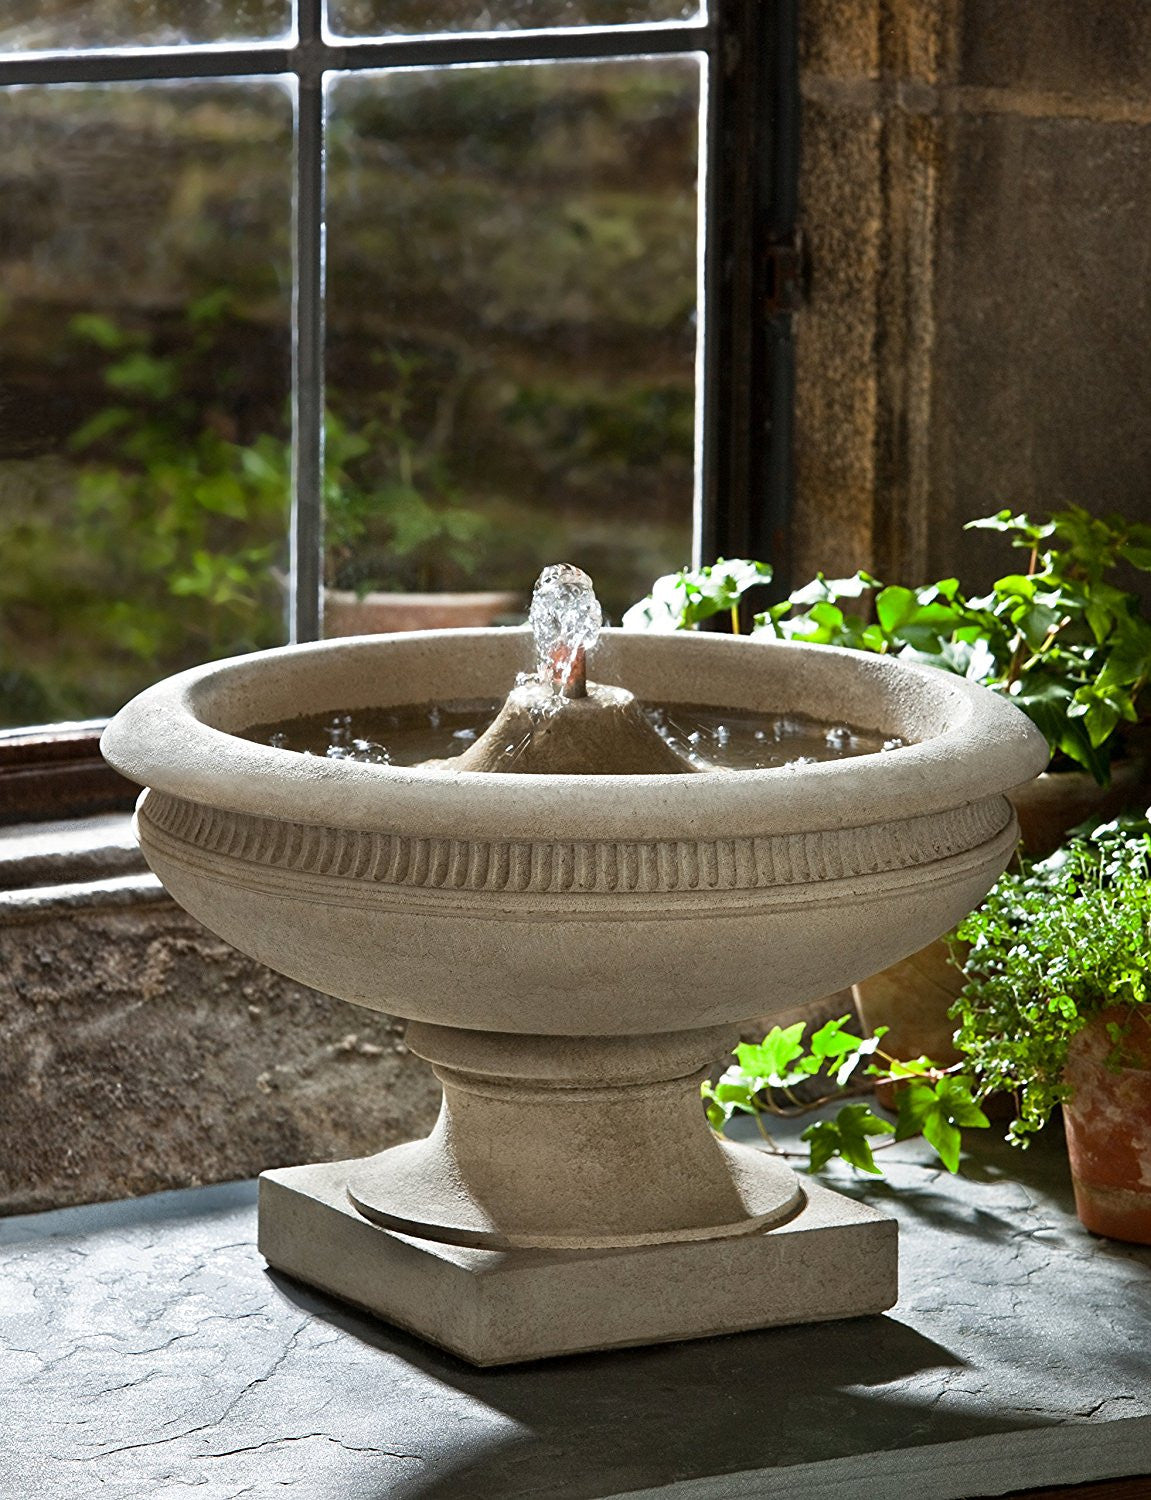 M-Series Veranda Fountain - Soothing Walls